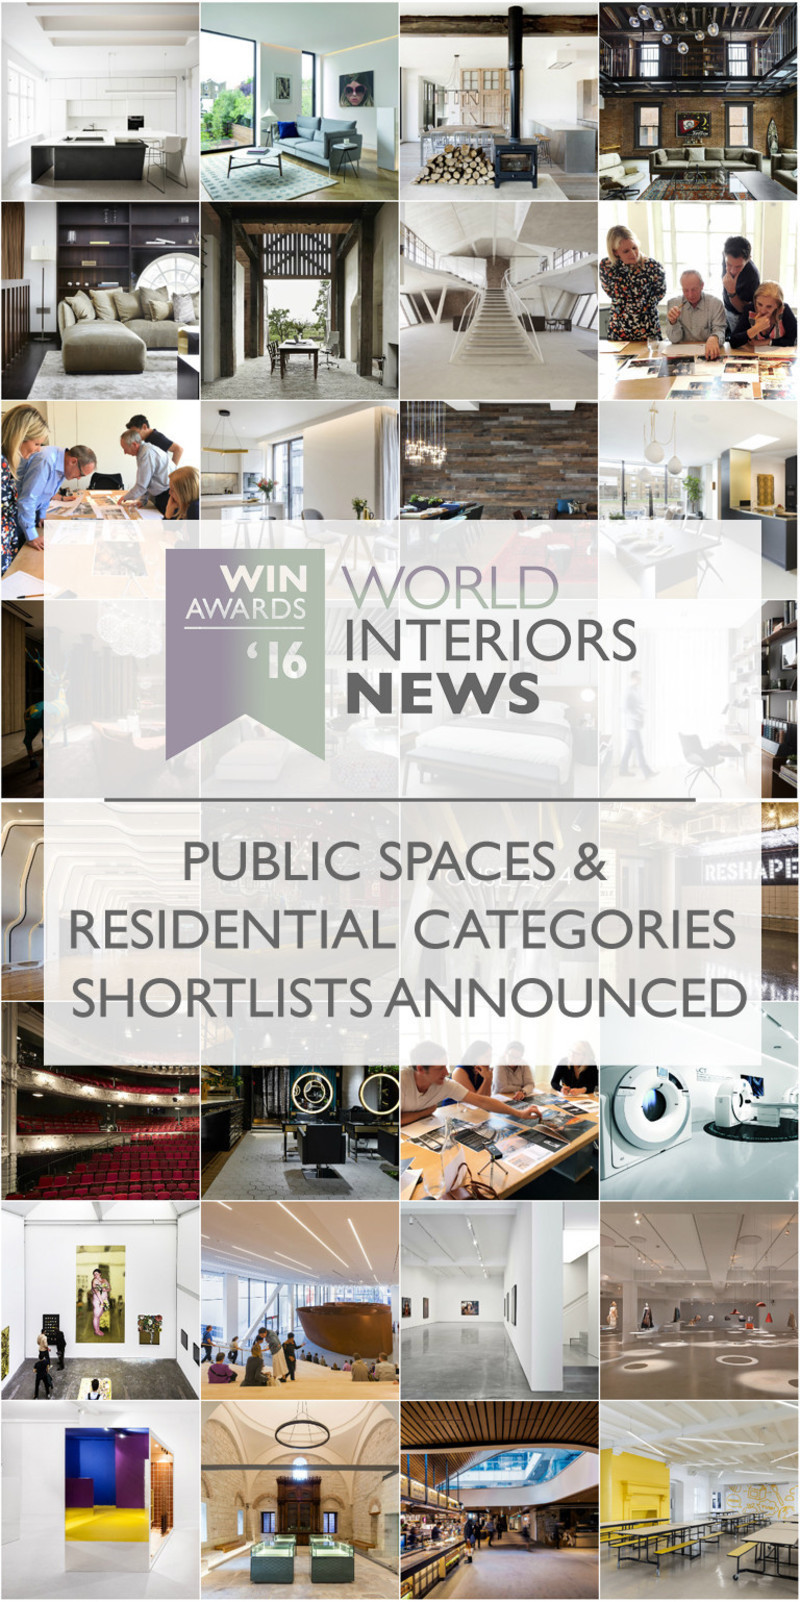 Newsroom | v2com-newswire | Newswire | Architecture | Design | Lifestyle - Press release - WIN Awards - Public Spaces + Residential Categories Shortlists Announced - World Interiors News